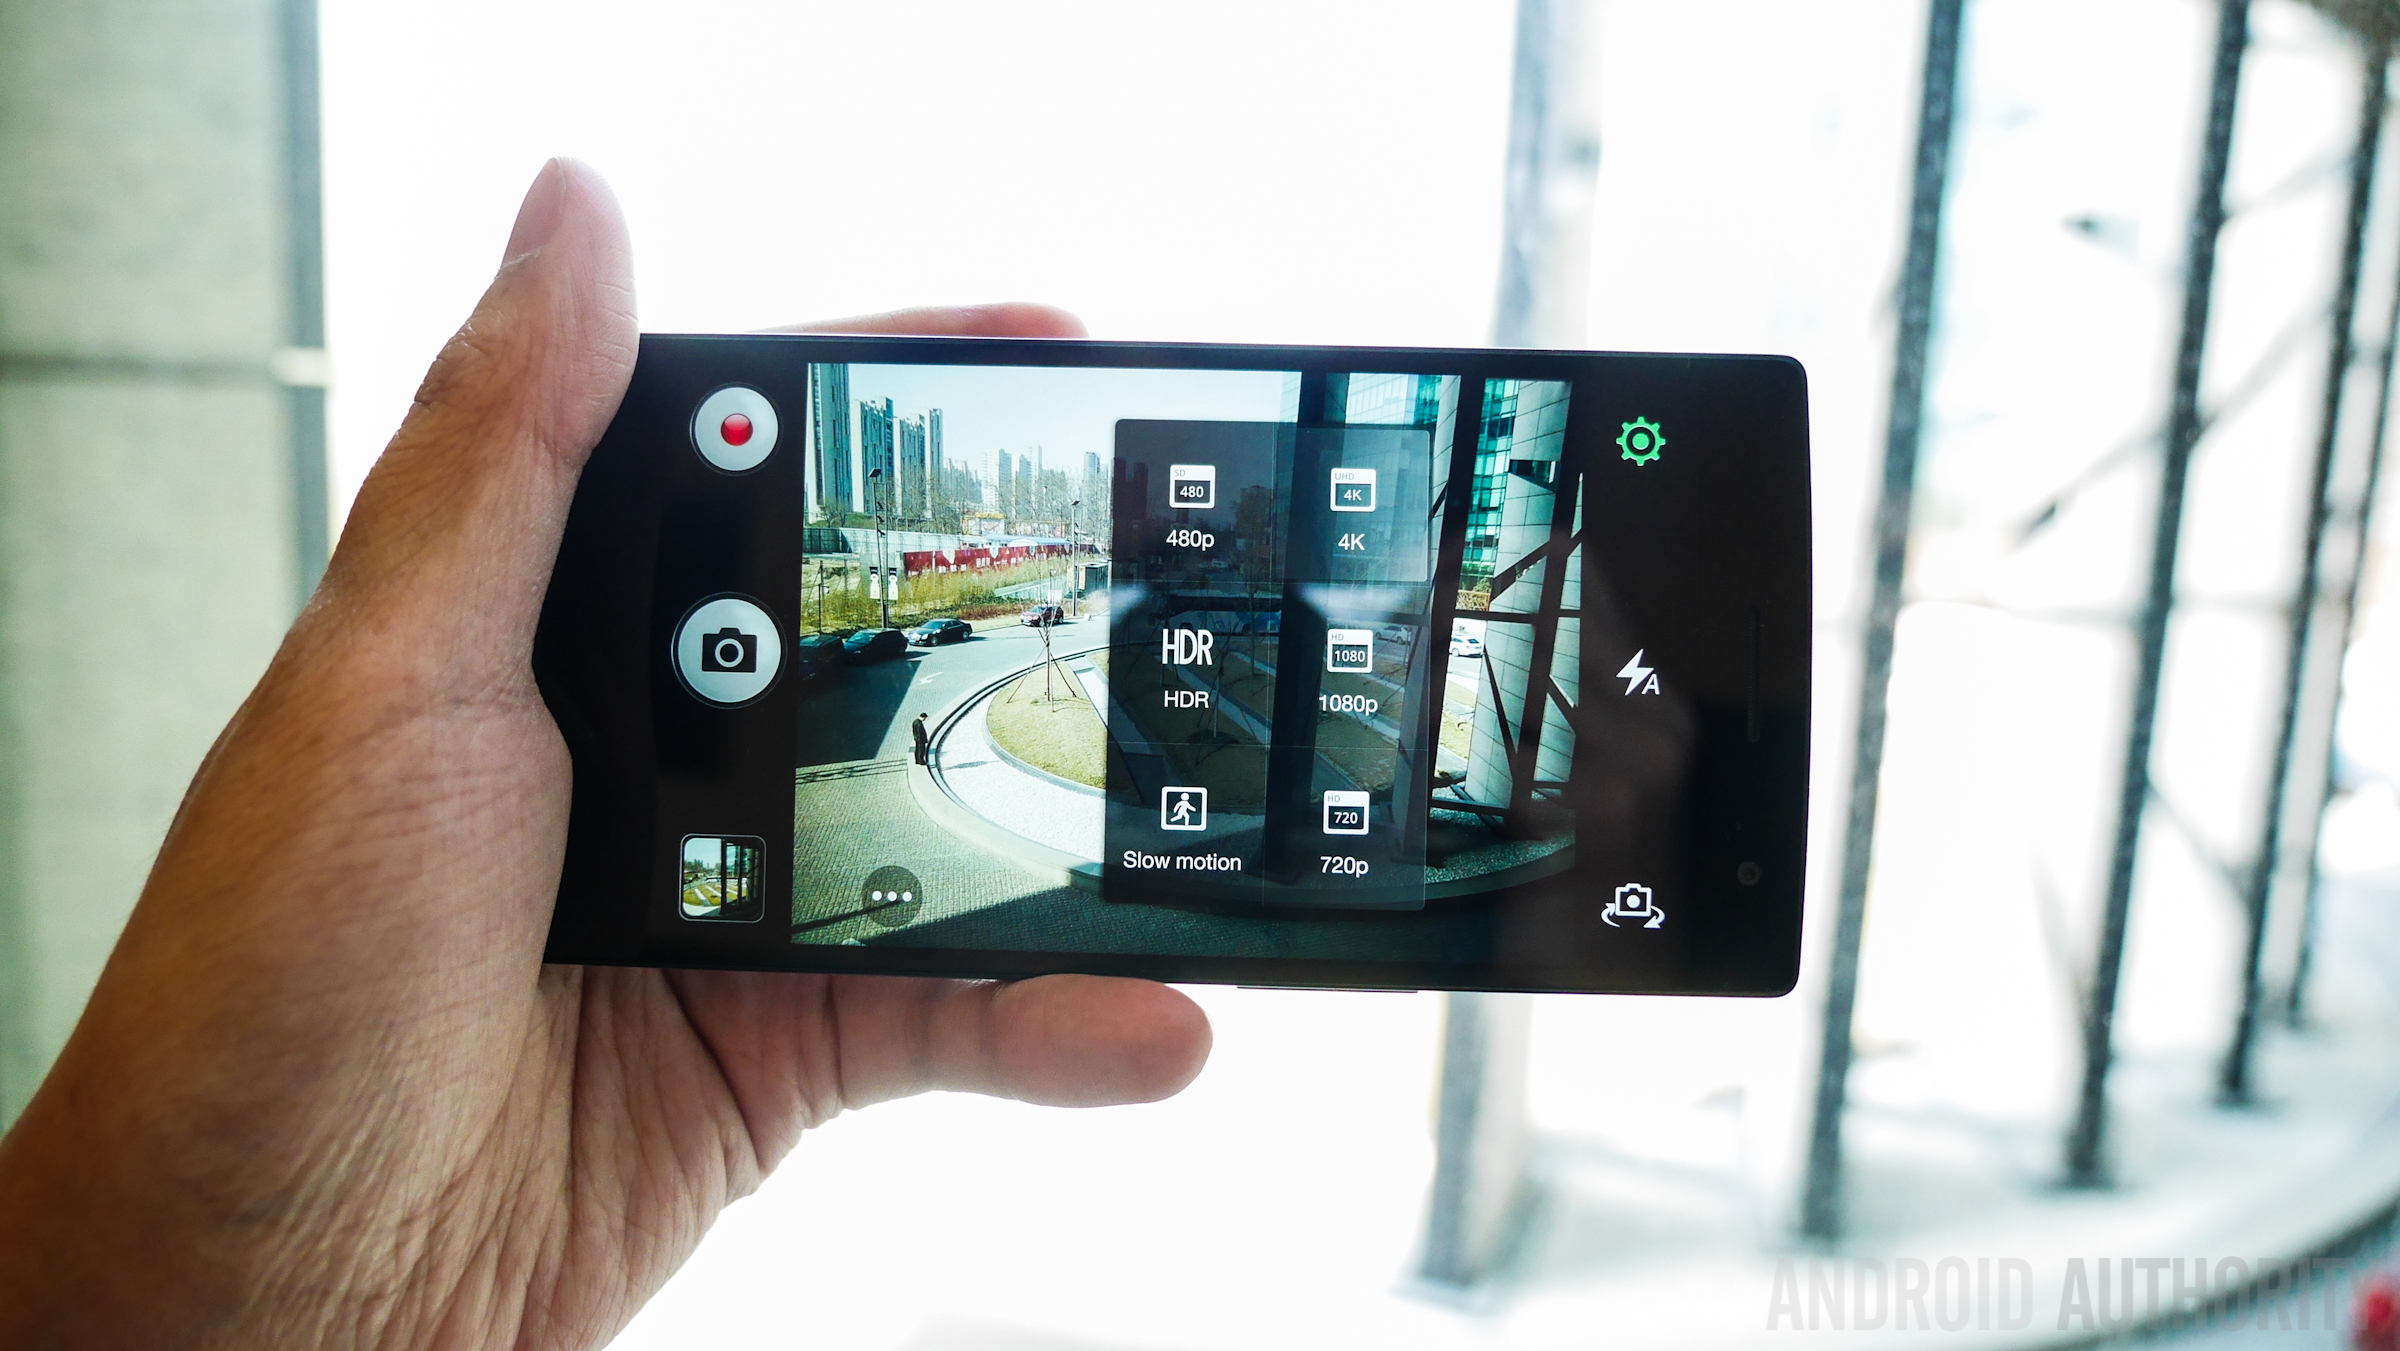 Find 7 2014 Hands on AA-1180700